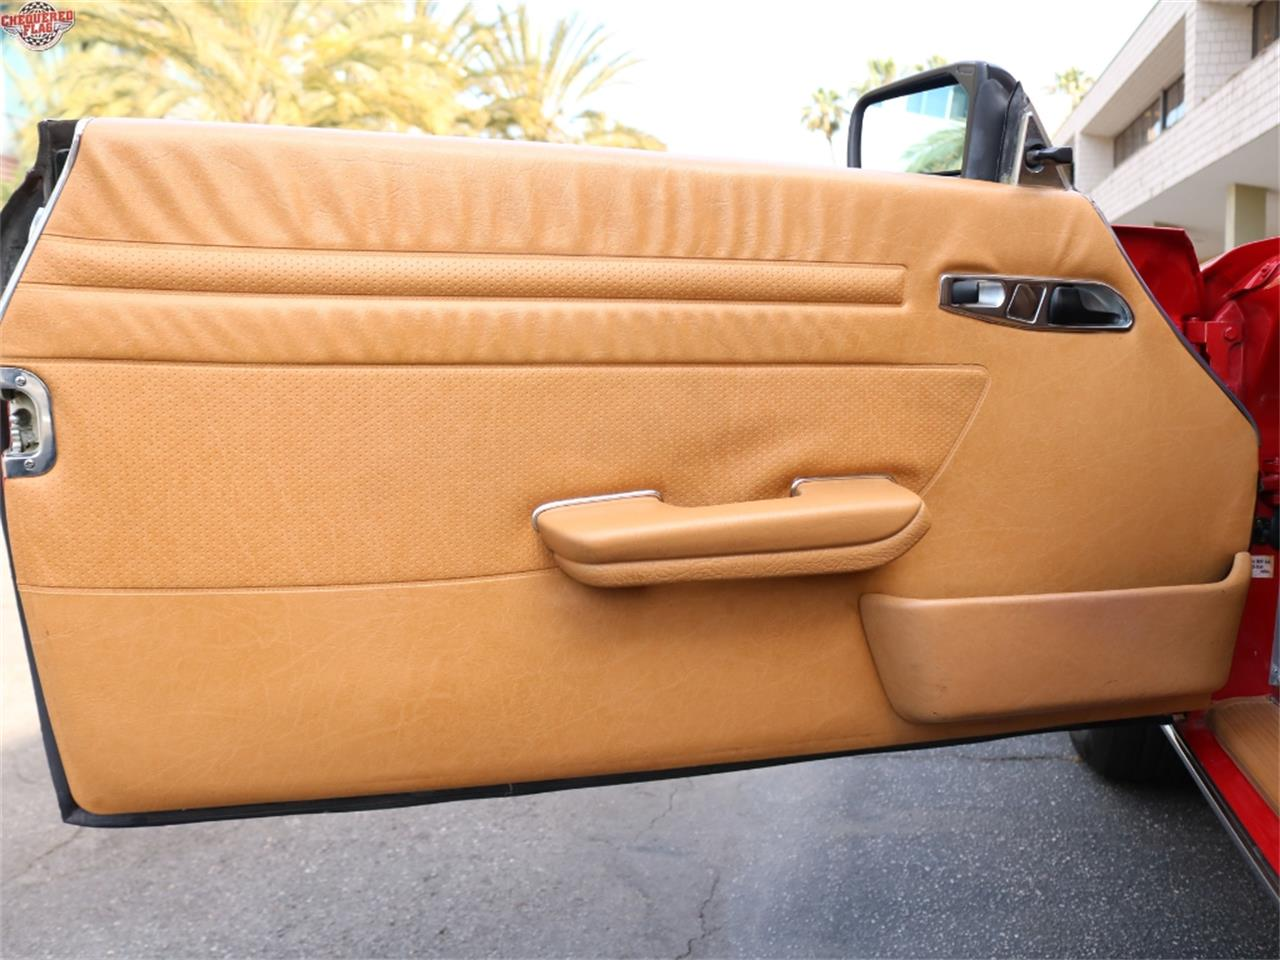 Large Picture of 1988 Mercedes-Benz 560 located in California - $37,500.00 - L5LZ